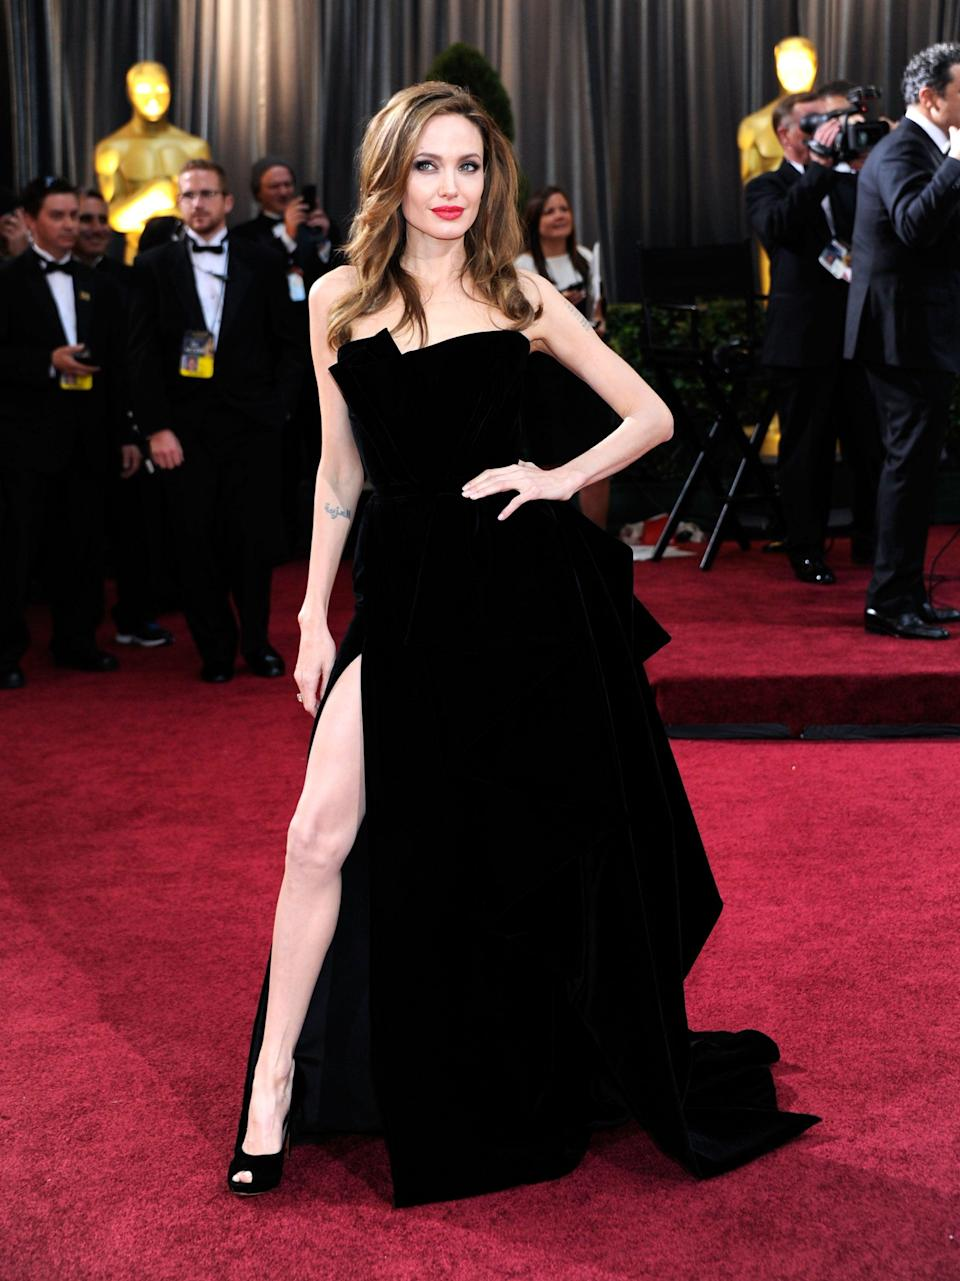 Angelina Jolie, and her leg, in 2012Getty